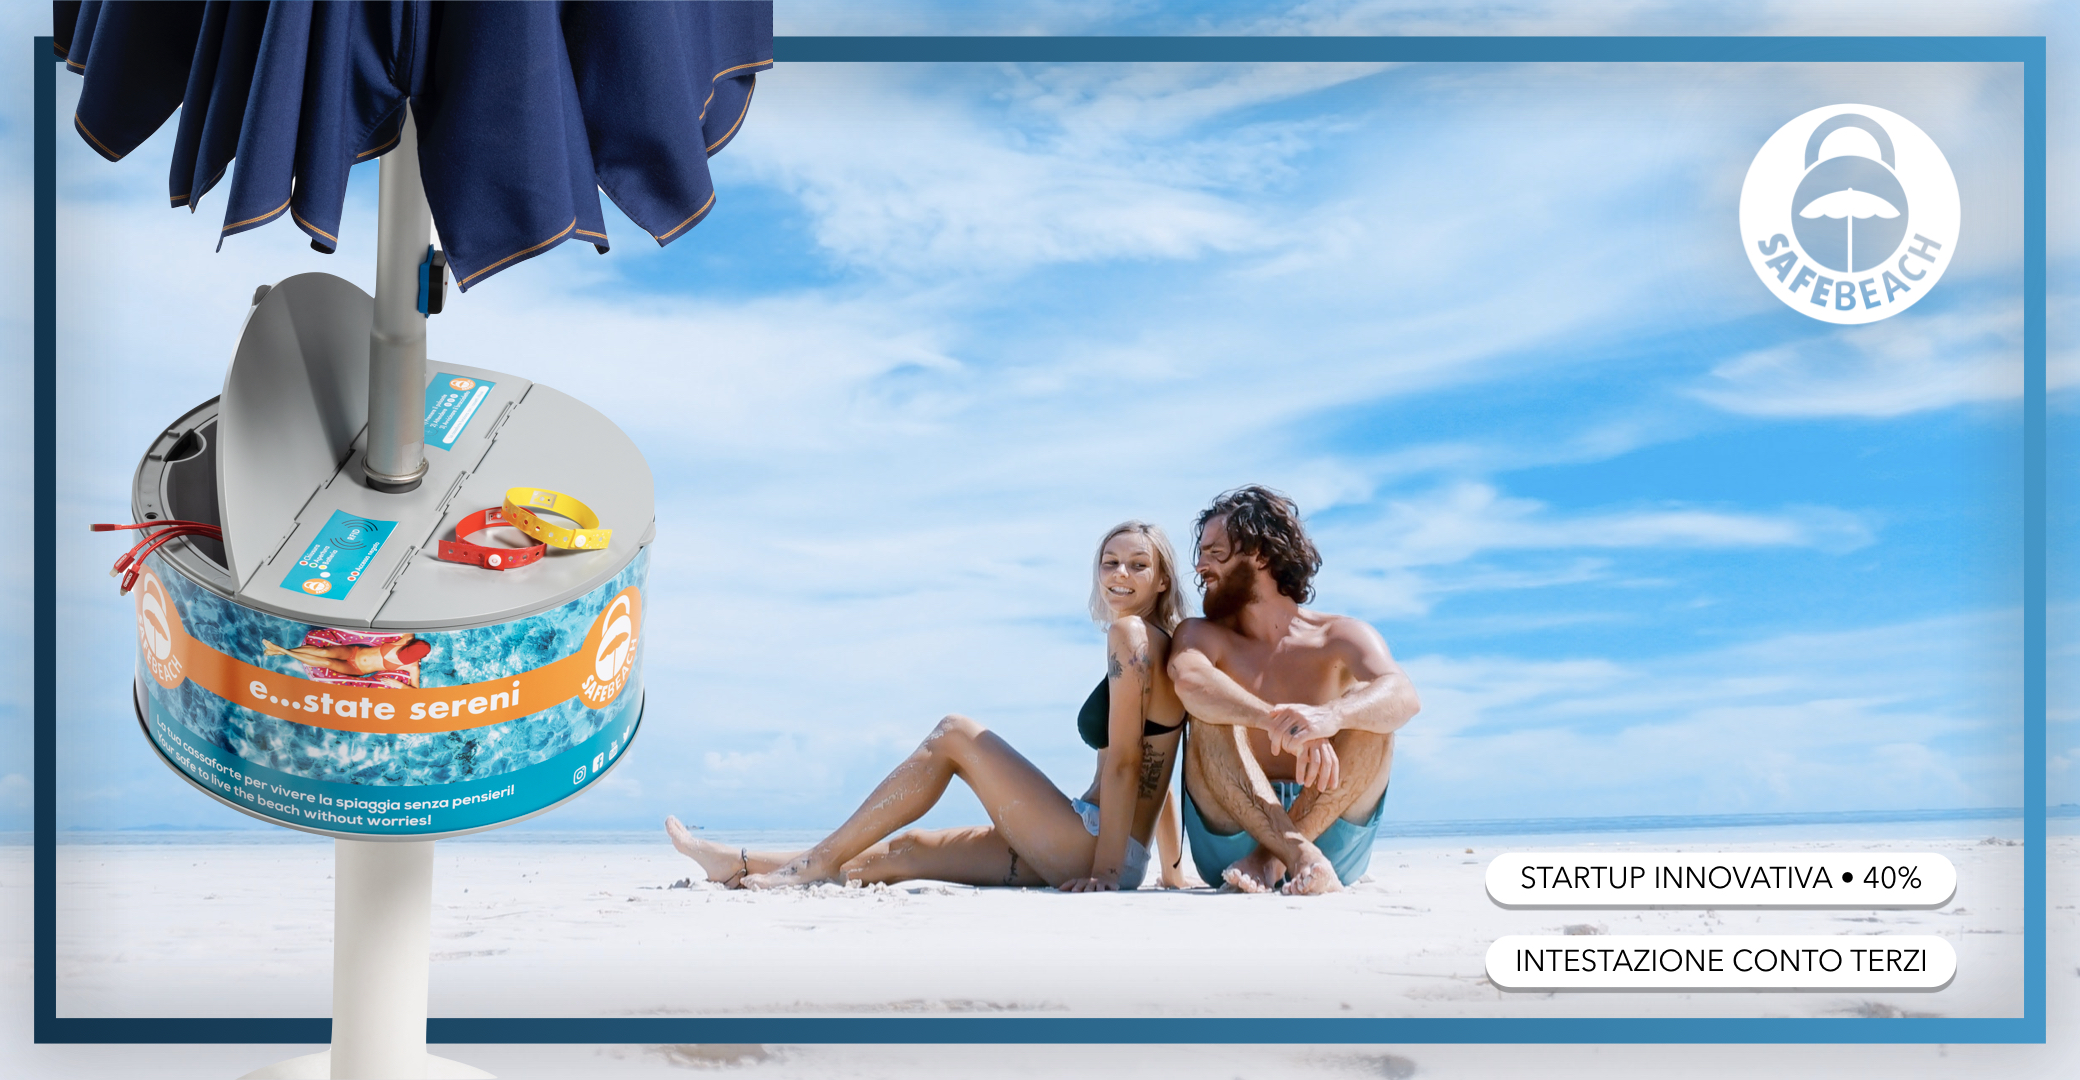 safebeach-crowdfunding-safesolution-spiagge-siucure